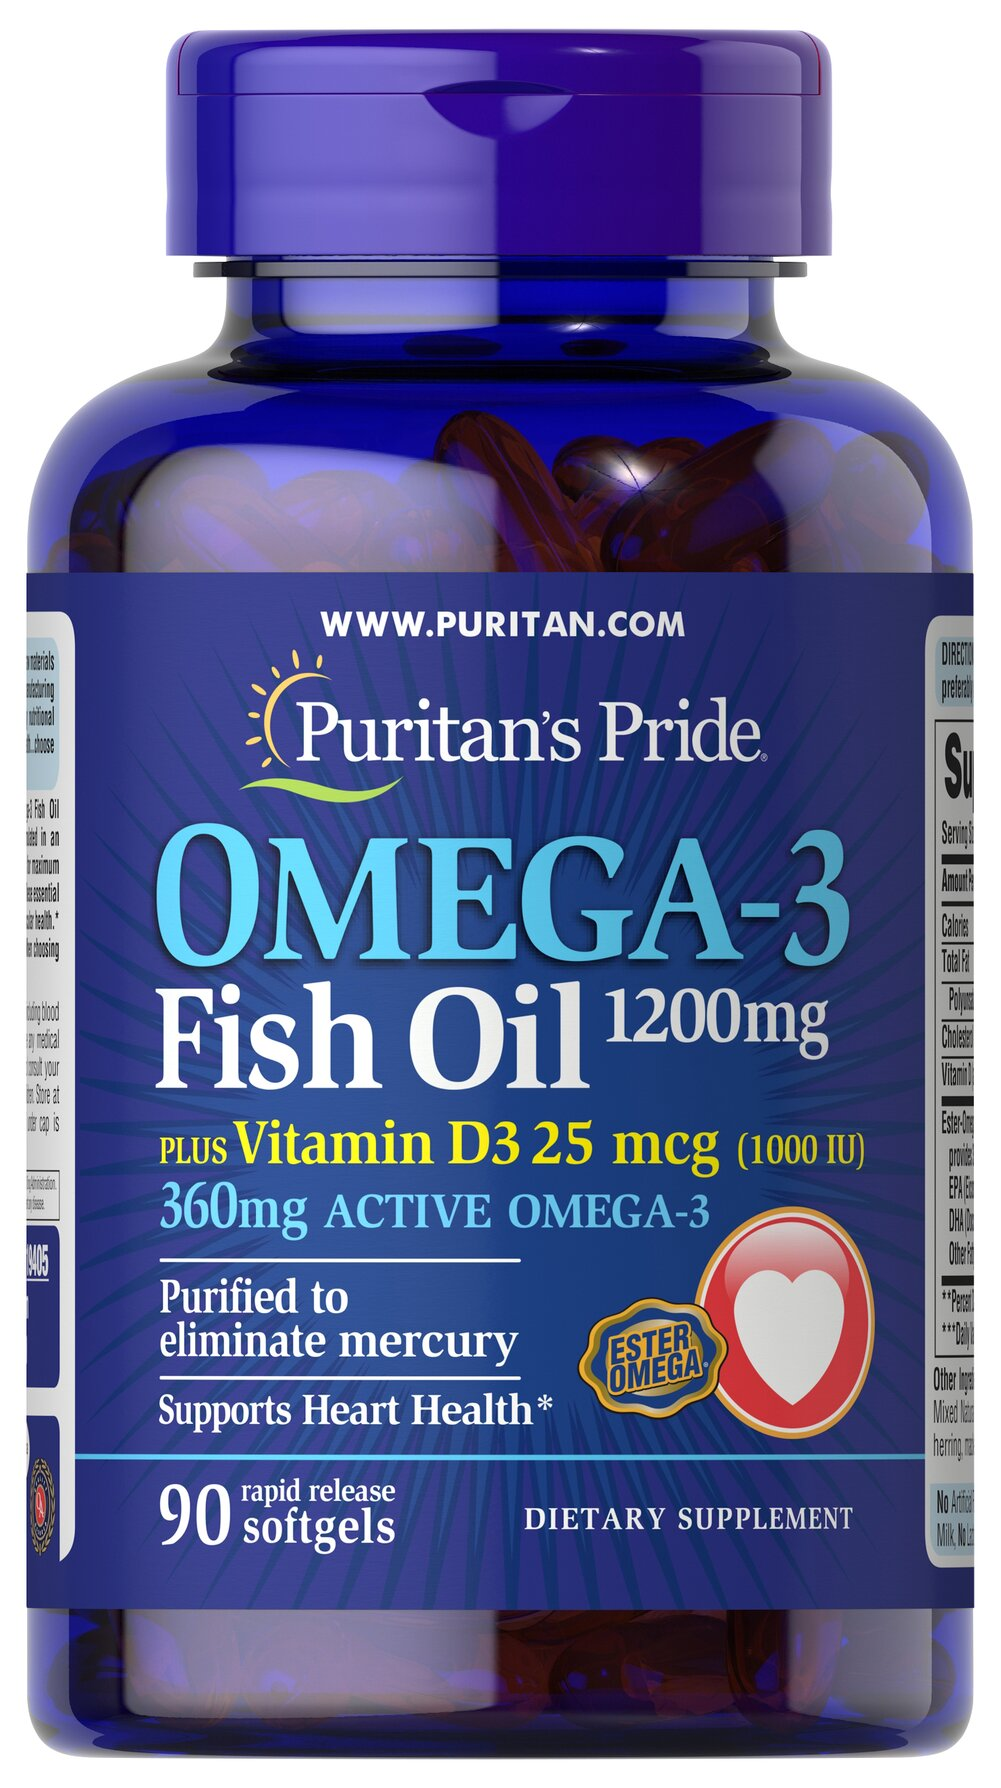 Omega 3 Fish Oil 1200 mg + Vitamin D3 1000 IU <p>Omega-3 Fish Oil– a highly concentrated and purified fish oil selected from the finest deep sea, cold water fish combined with 1000 IU of Vitamin D3 in one convenient coated softgel.</p> 90 Softgels 1200 mg/1000 IU $20.59